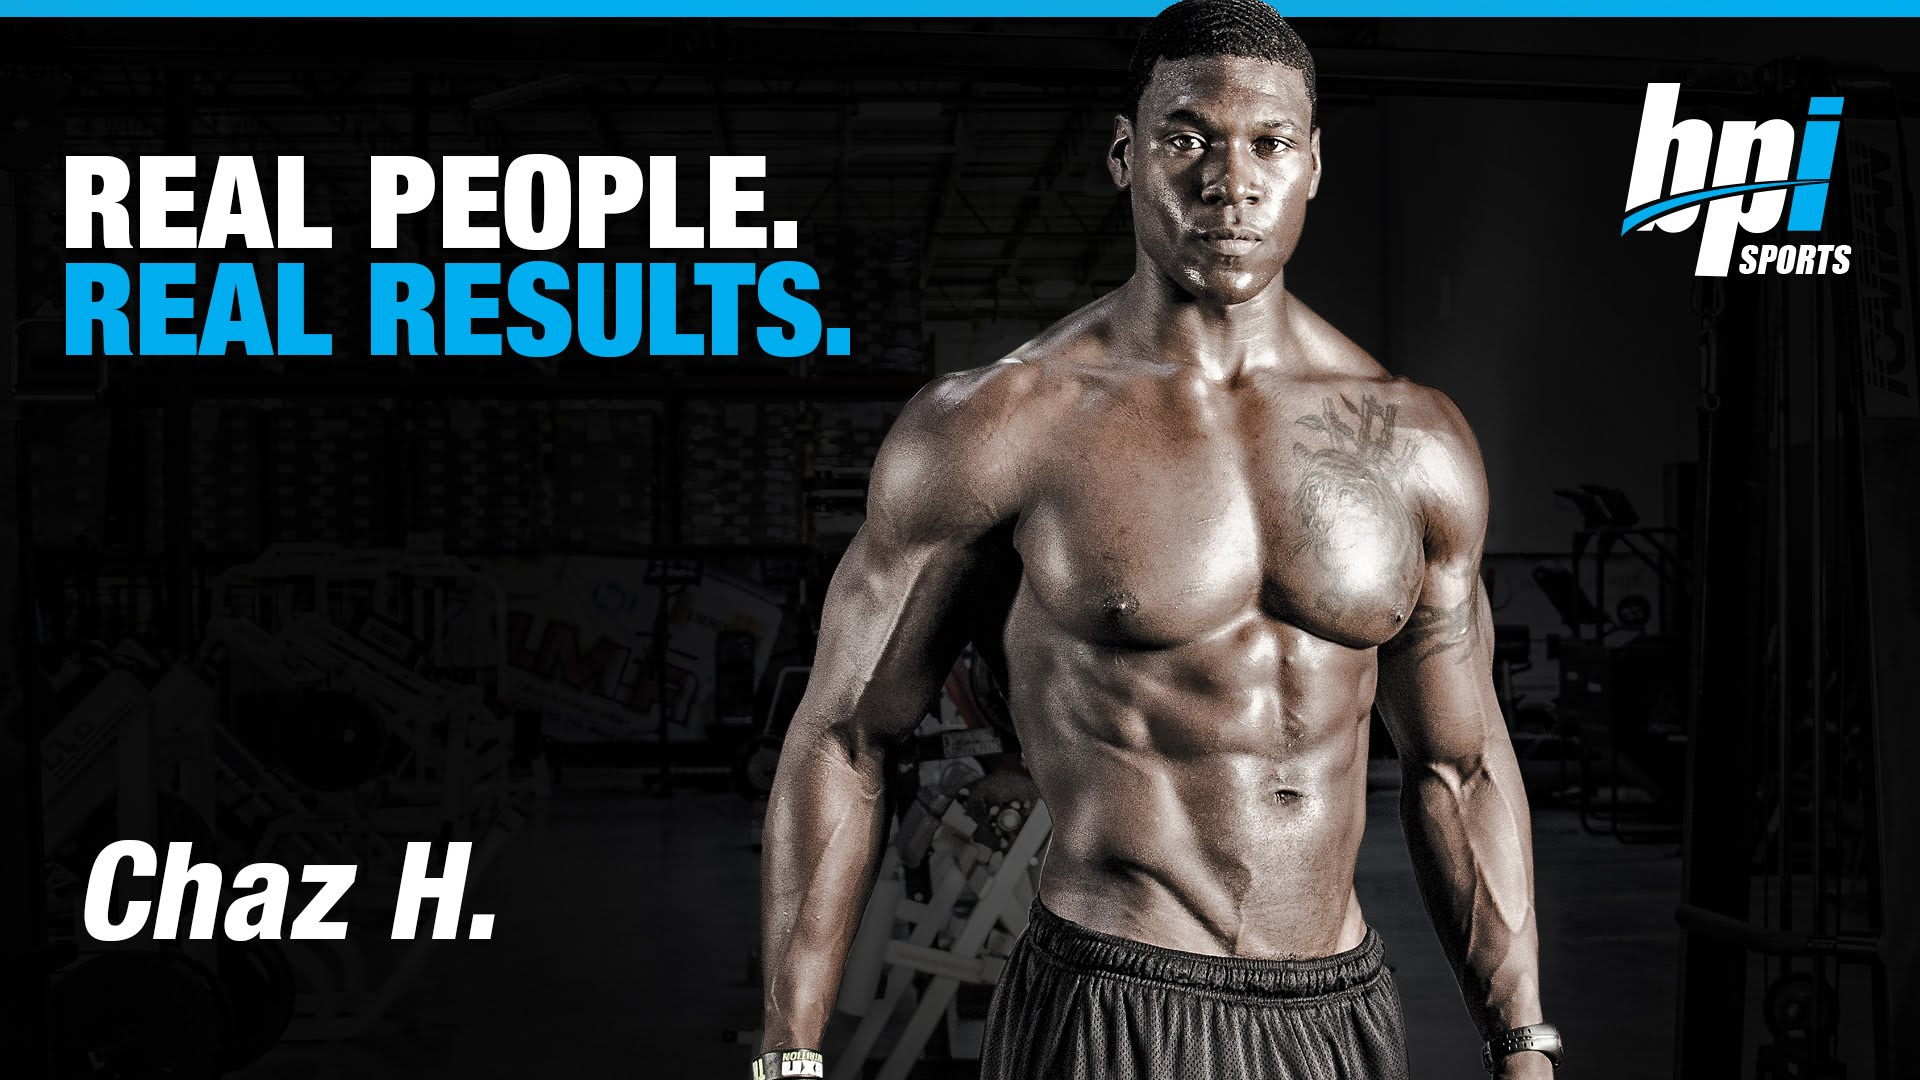 Real-People-Real-Results-NPC-Competitor-Chaz-H.